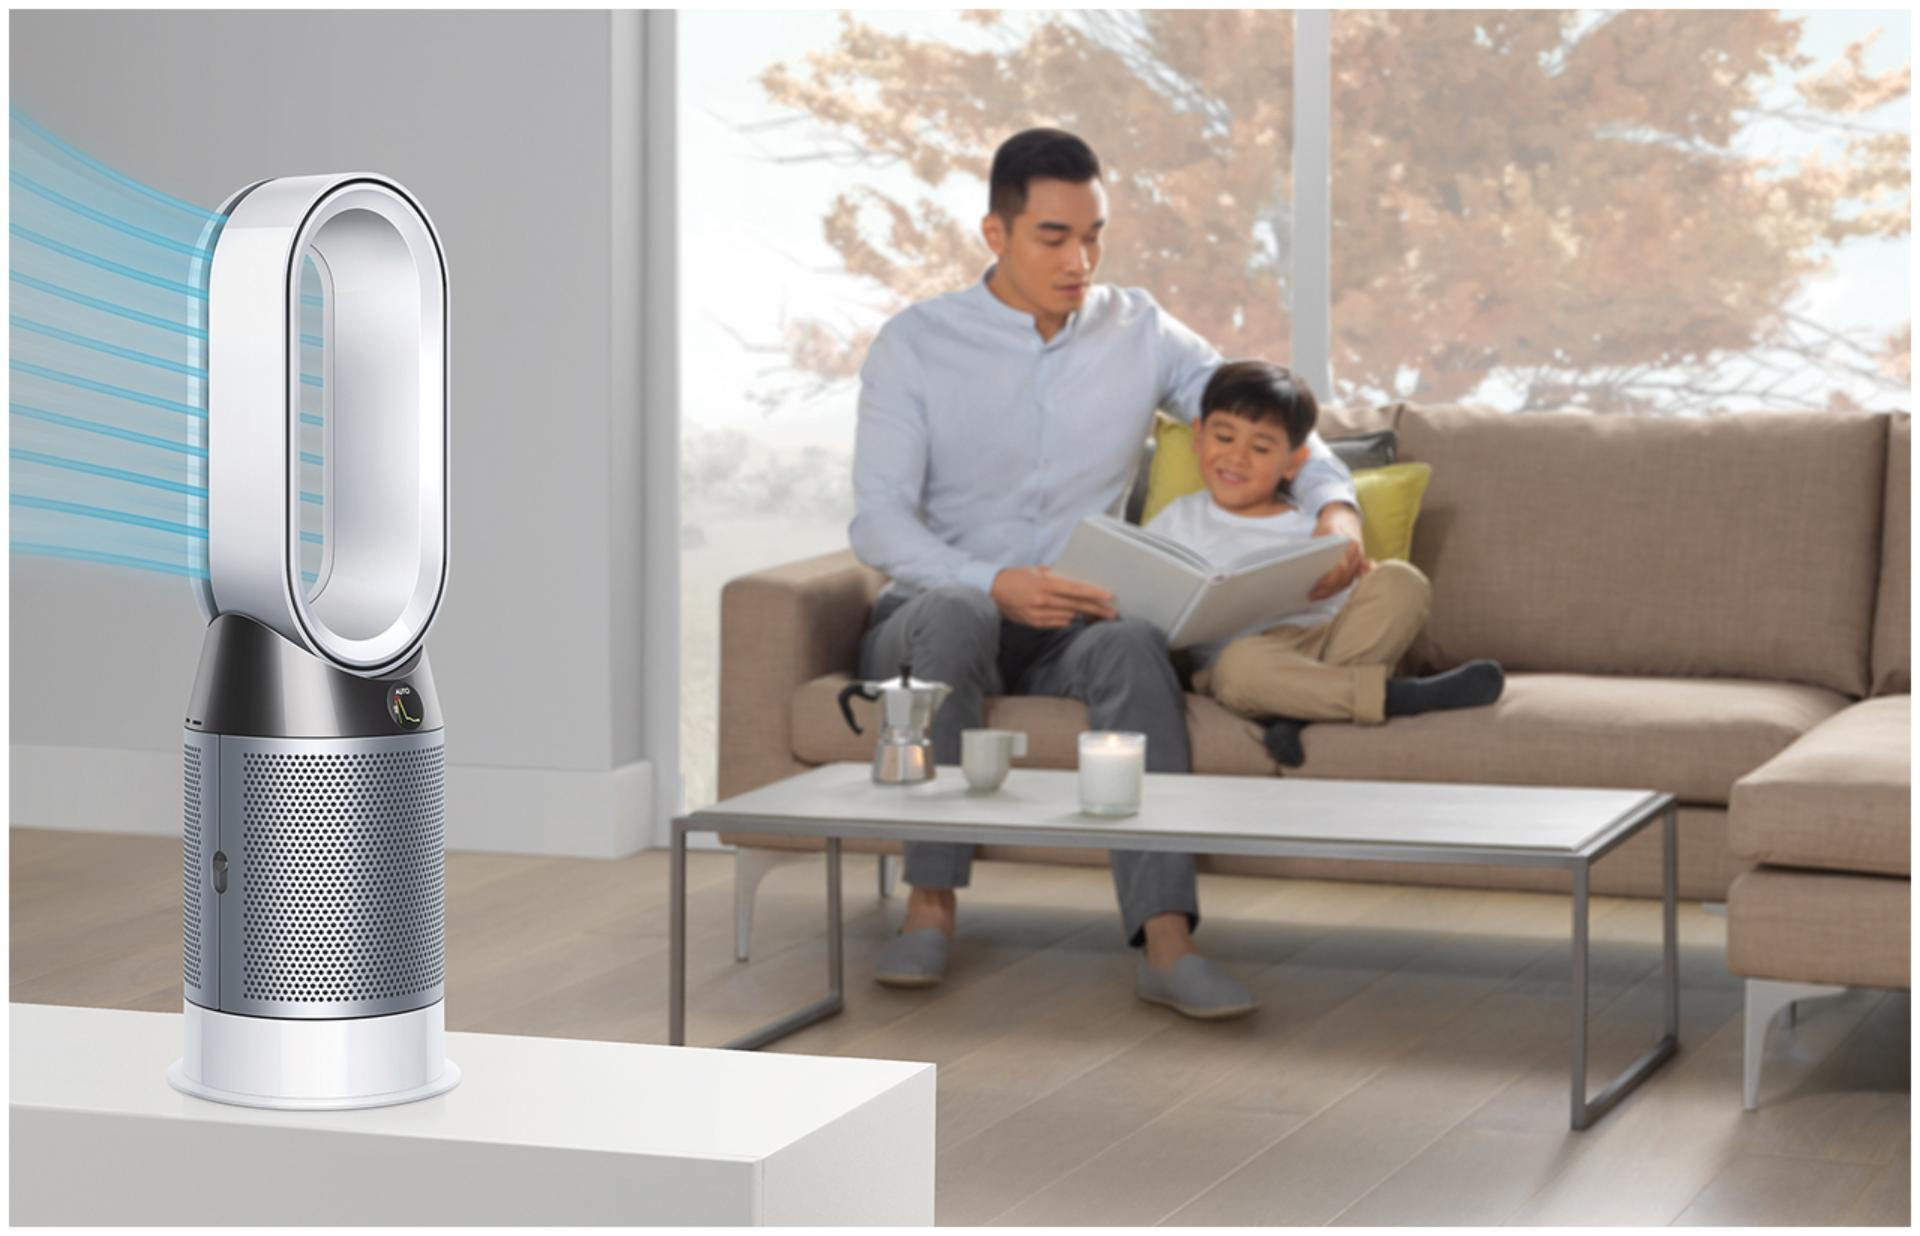 Dyson purifier fan heater in diffused mode in family room